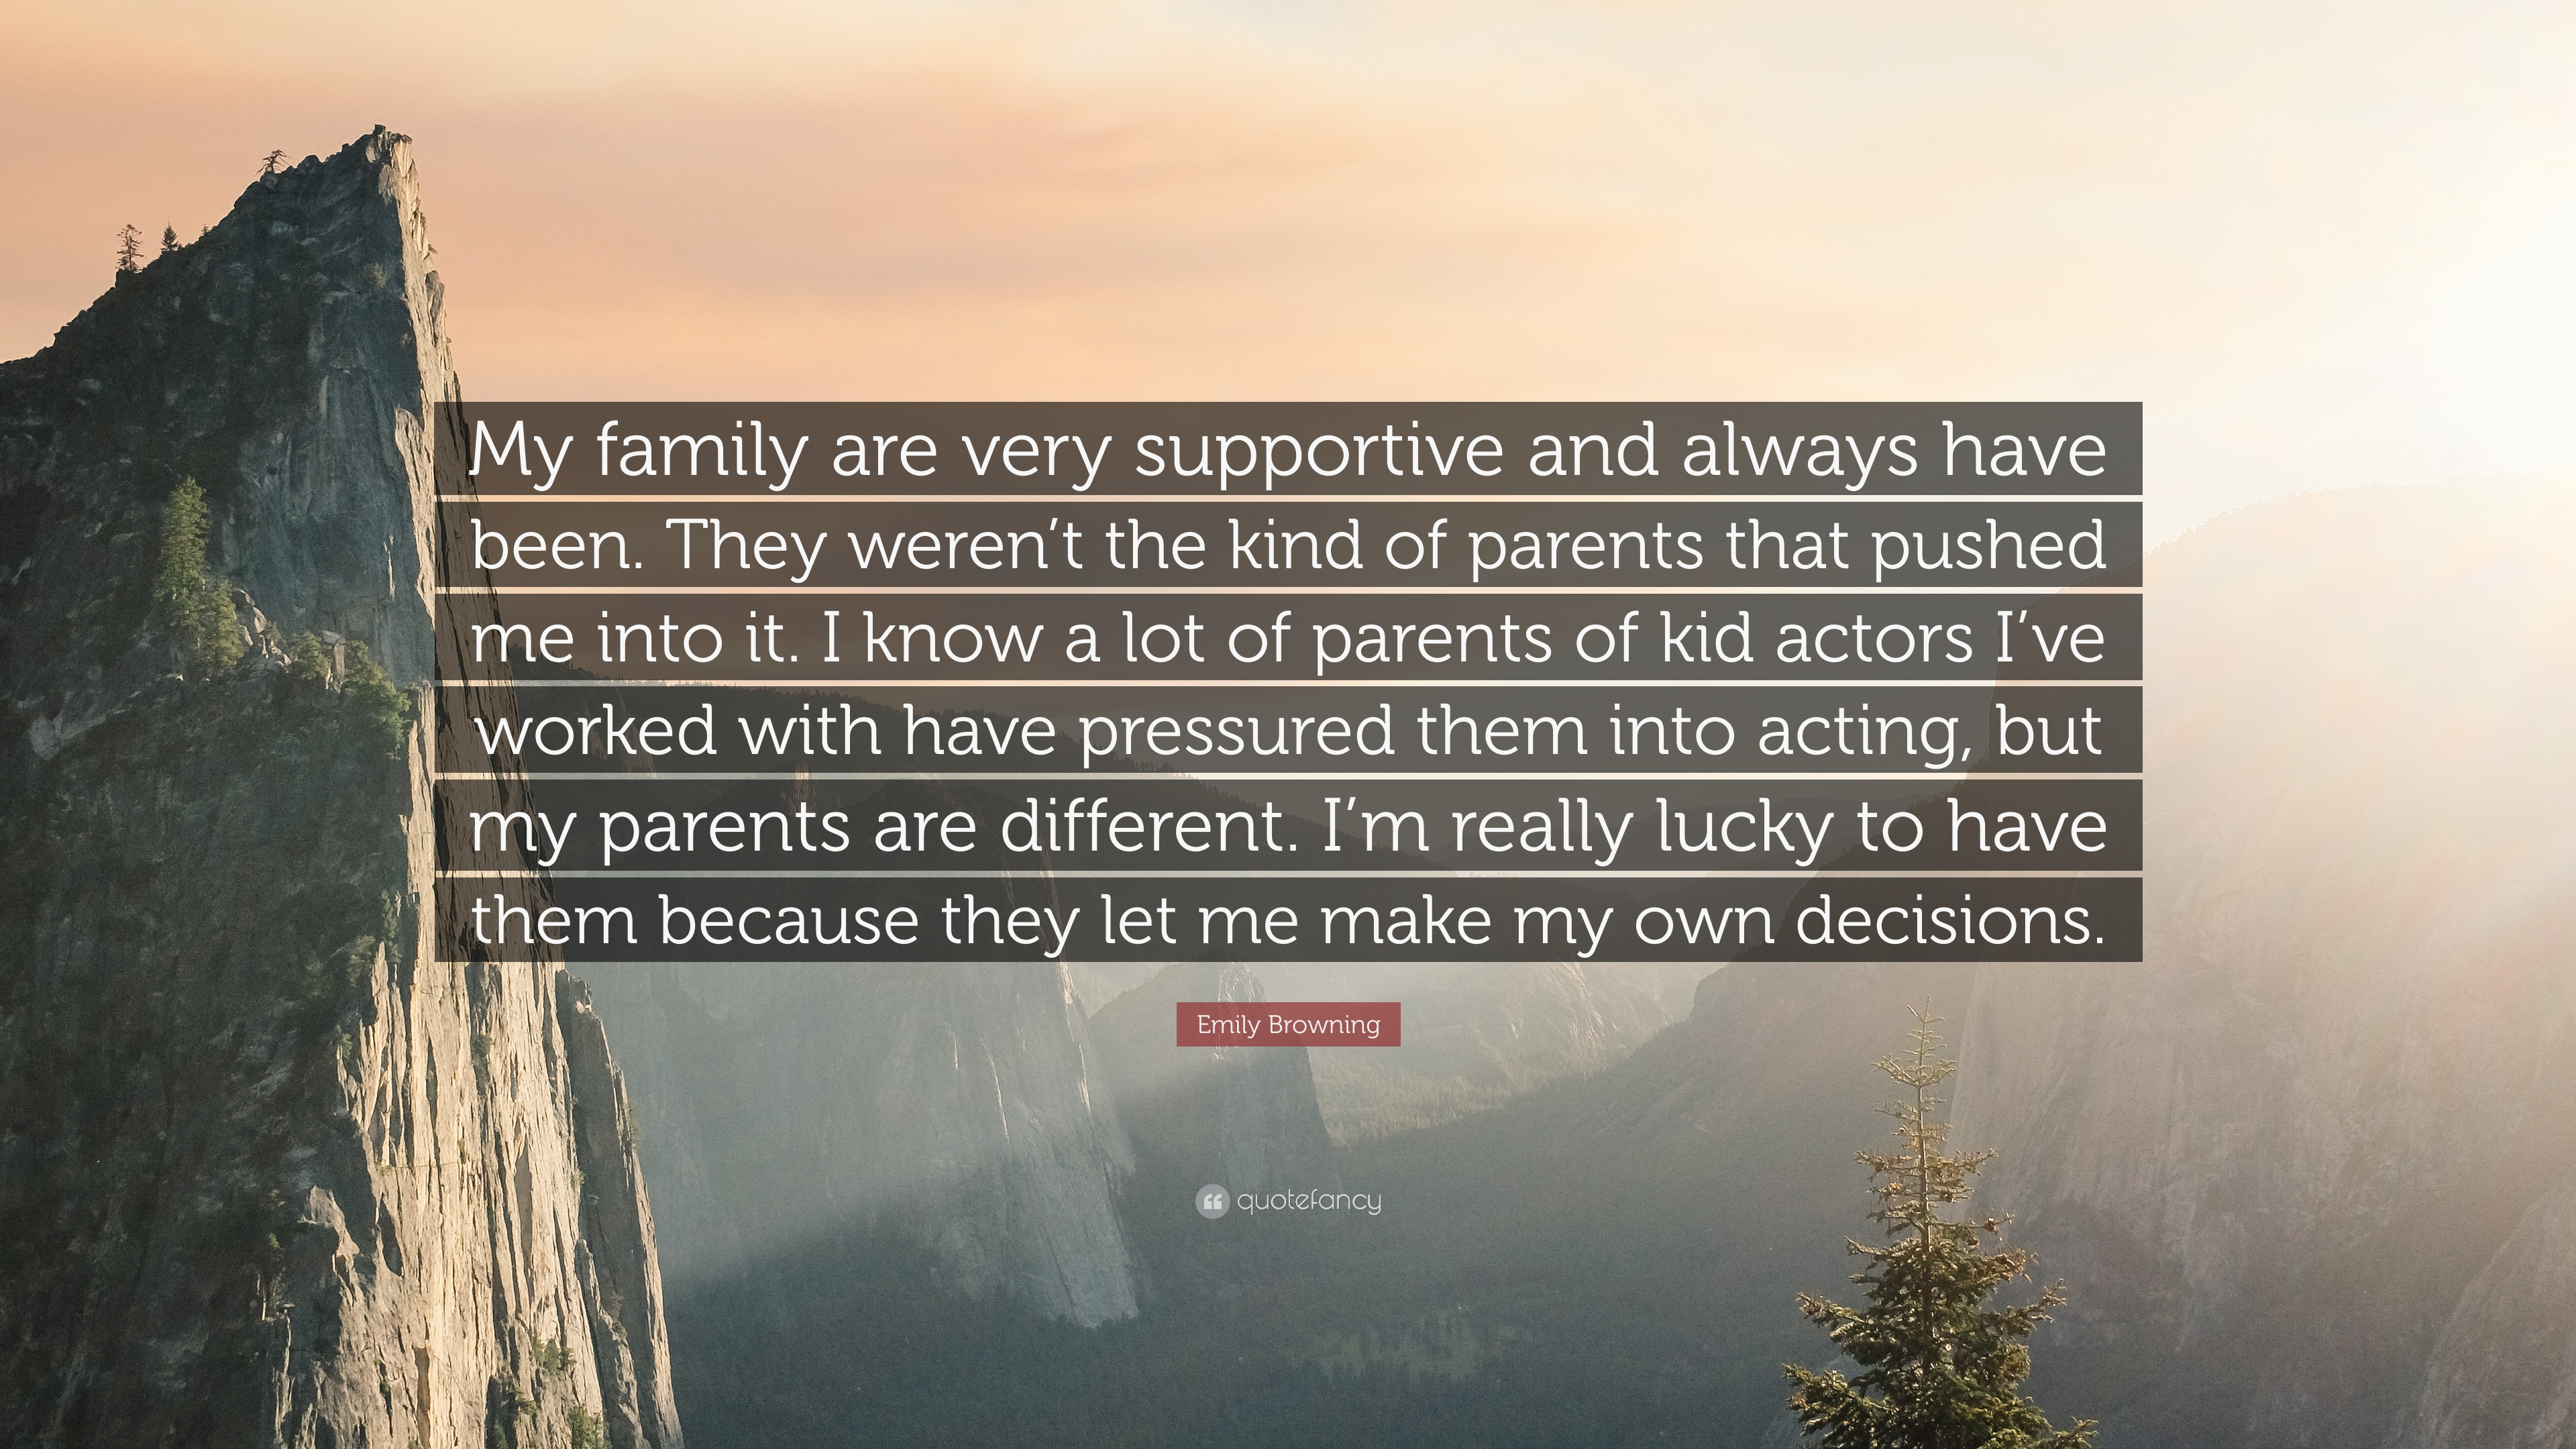 Emily browning quote my family are very supportive and always have been they